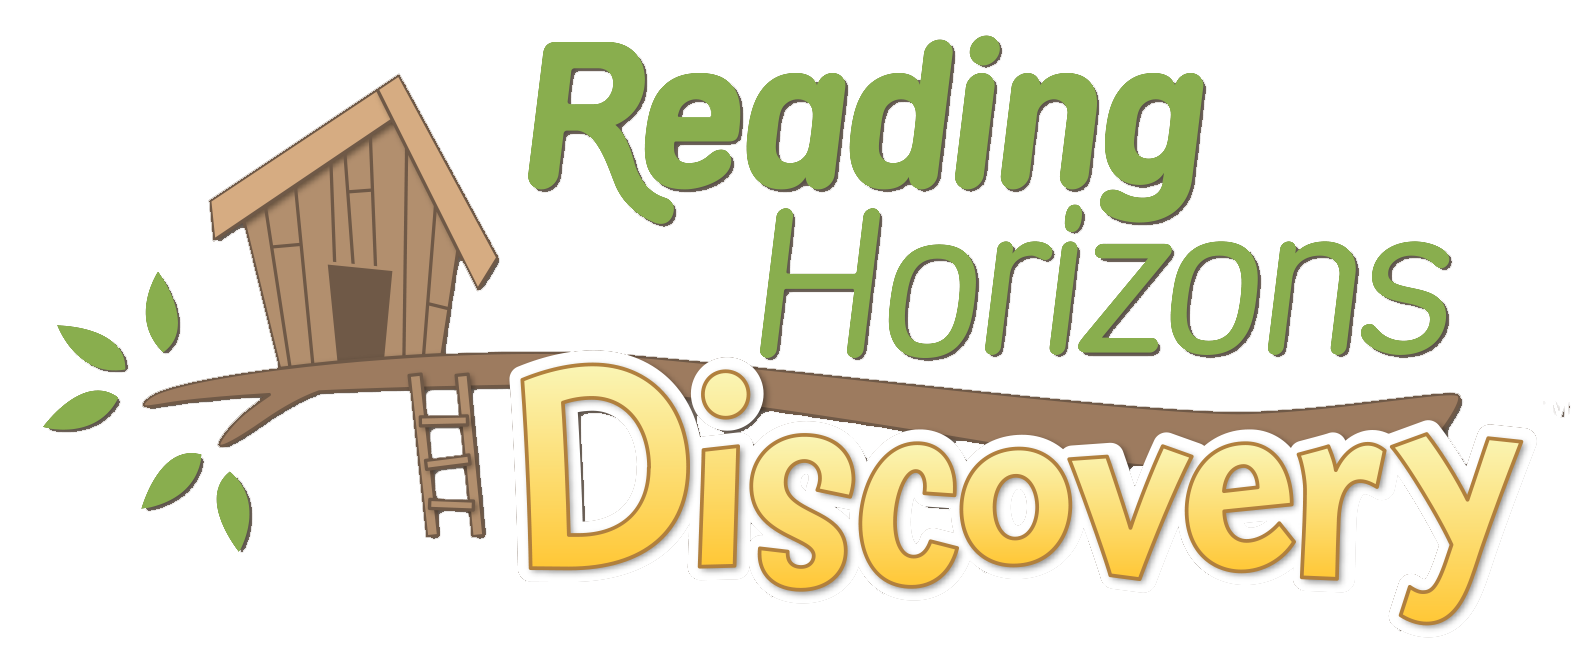 English clipart english journal. Welcome reading horizons books